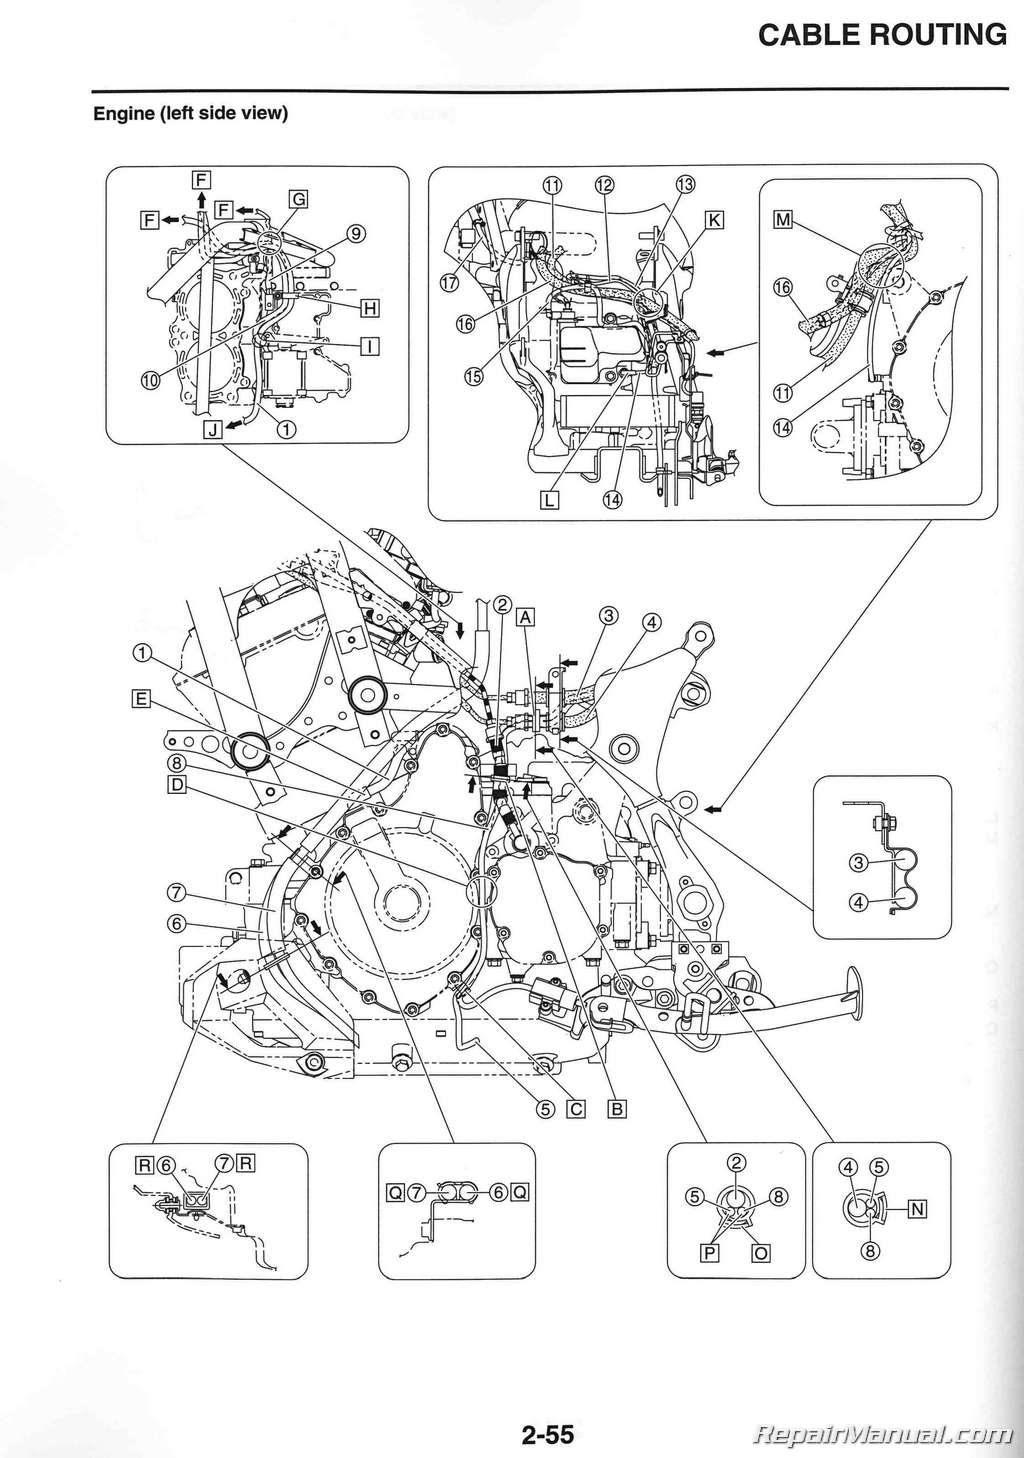 Honda 300 Fourtrax Rear End Parts Diagram additionally High Standard Model B Schematic additionally 251754420406 together with Dirt Bike Coloring likewise 2005 Honda 650 Rincon Wiring Diagram. on honda atv parts